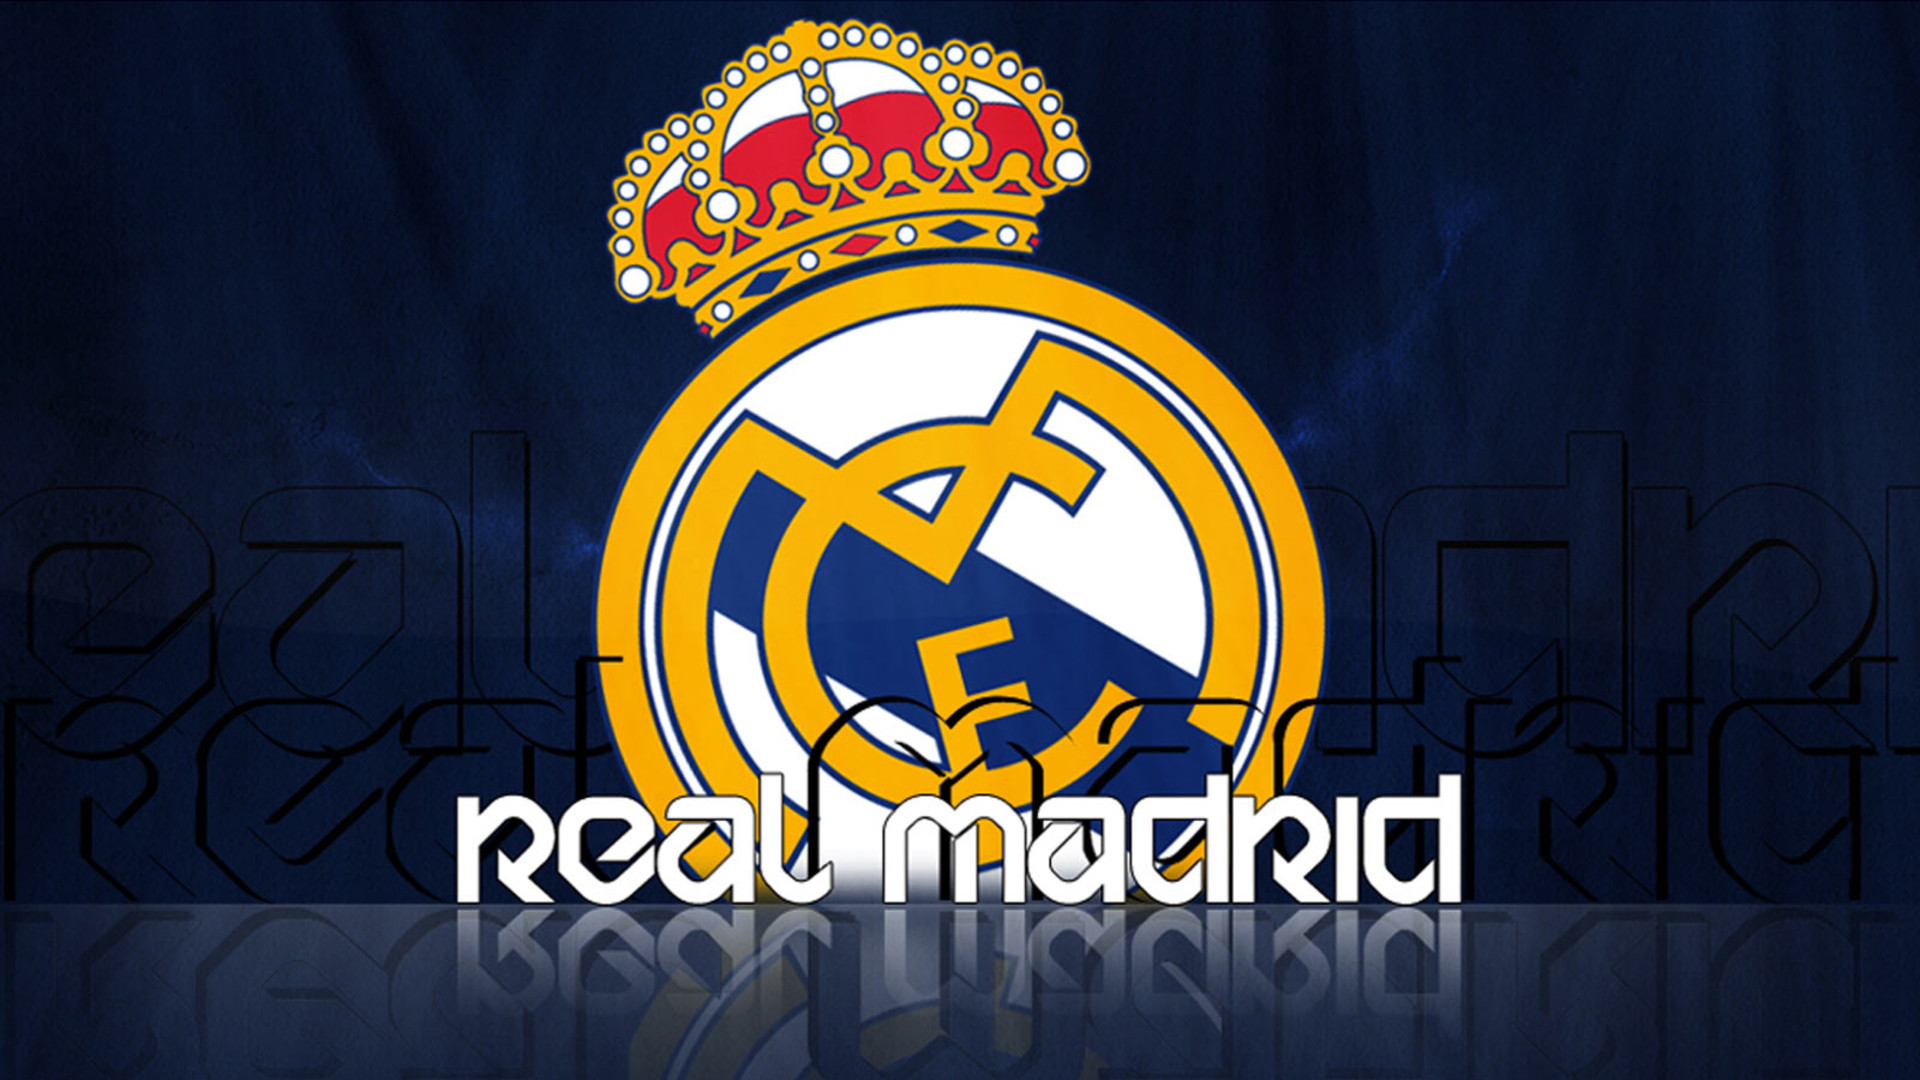 1920x1080 real madrid logo fullhd wallpaper hd free background images mac desktop  wallpapers amazing high definition 4k